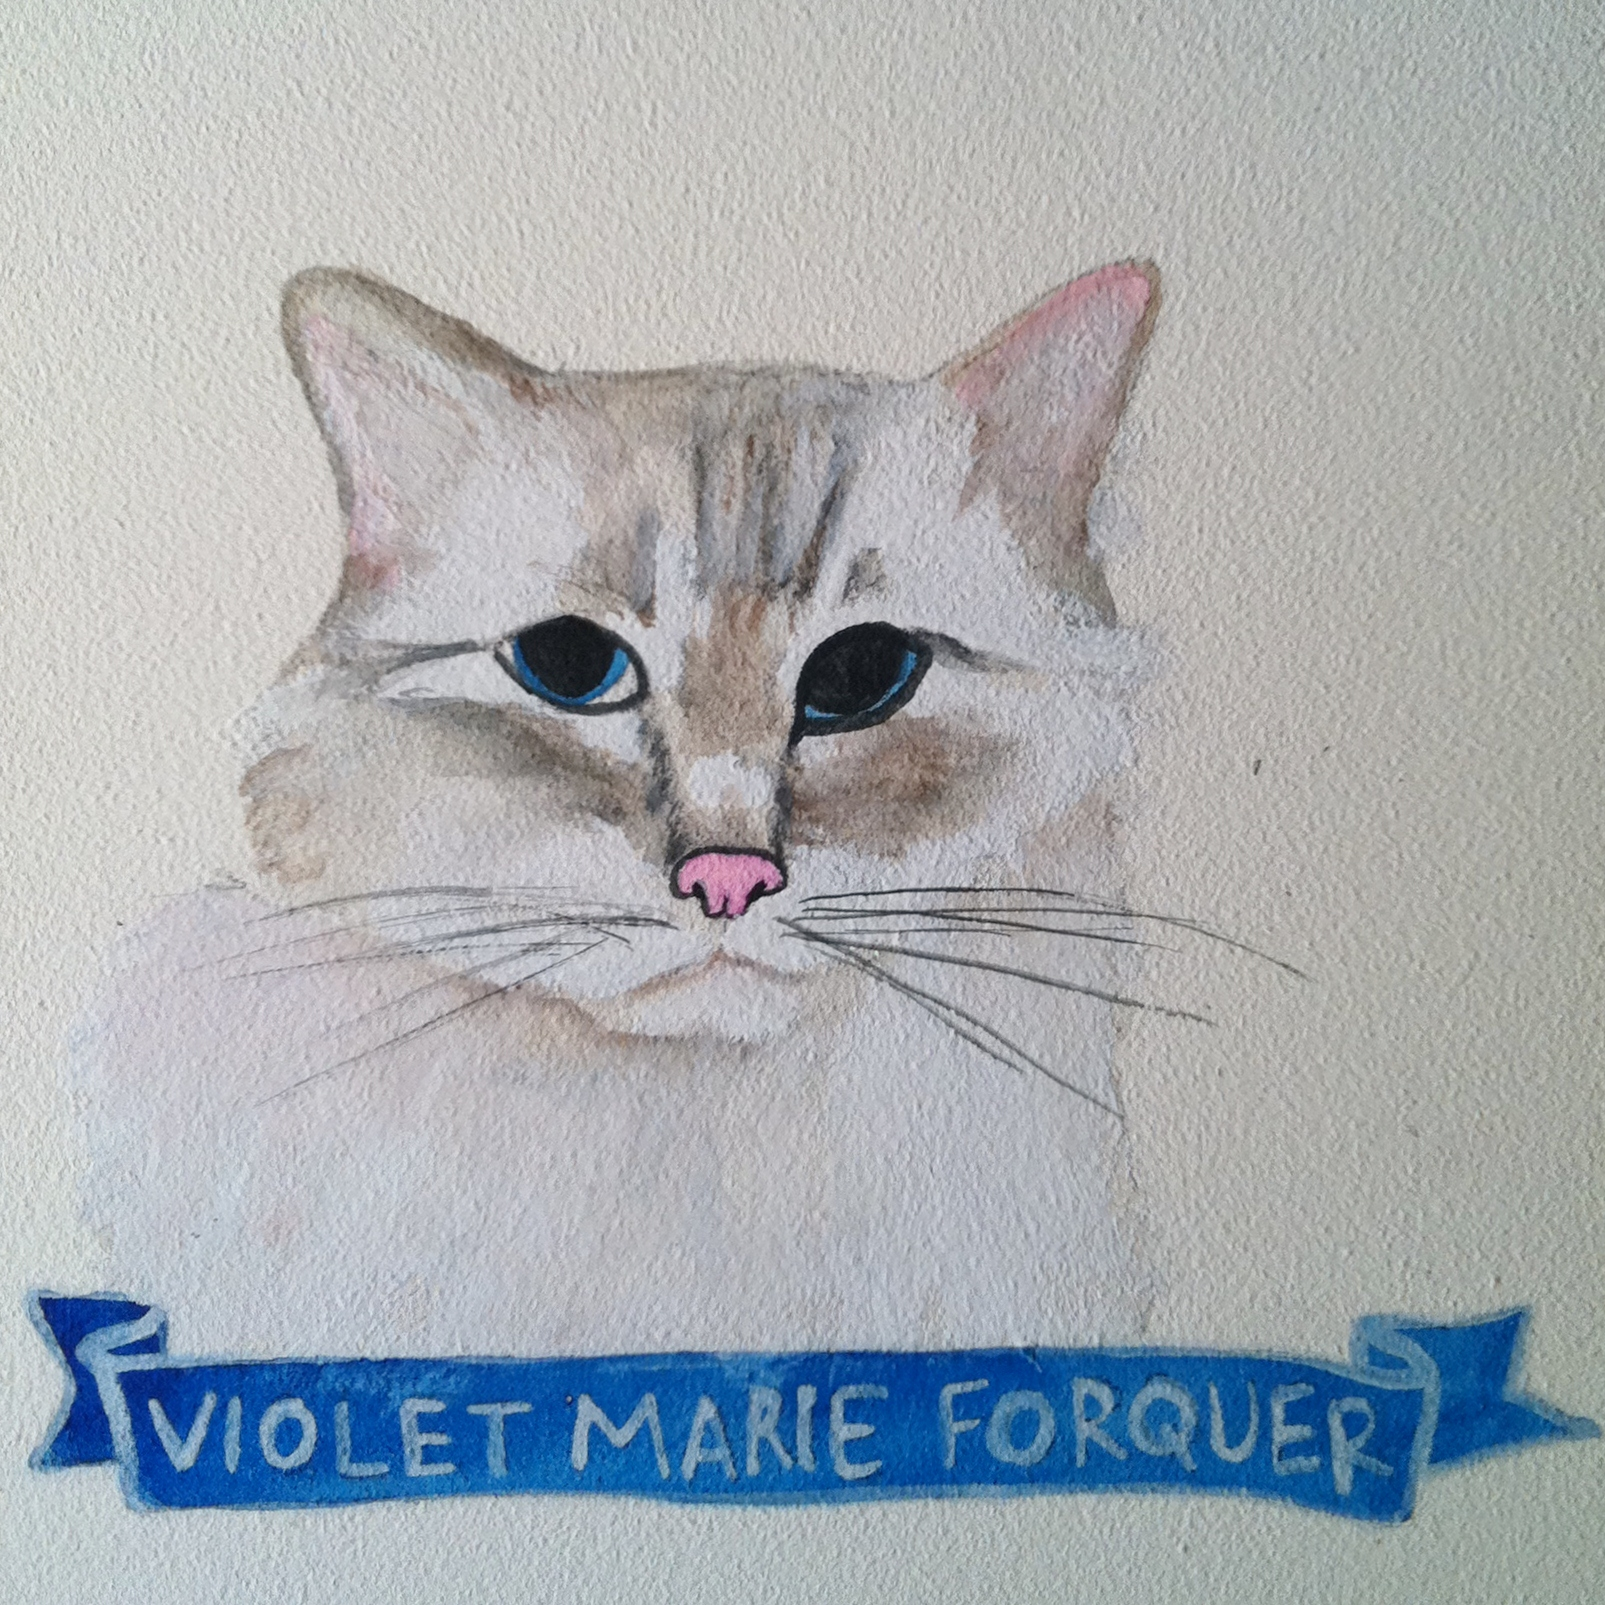 Talent Loves Company at Barbara Archer Gallery: 365 portraits by Lydia Walls - Violet Marie Forquer